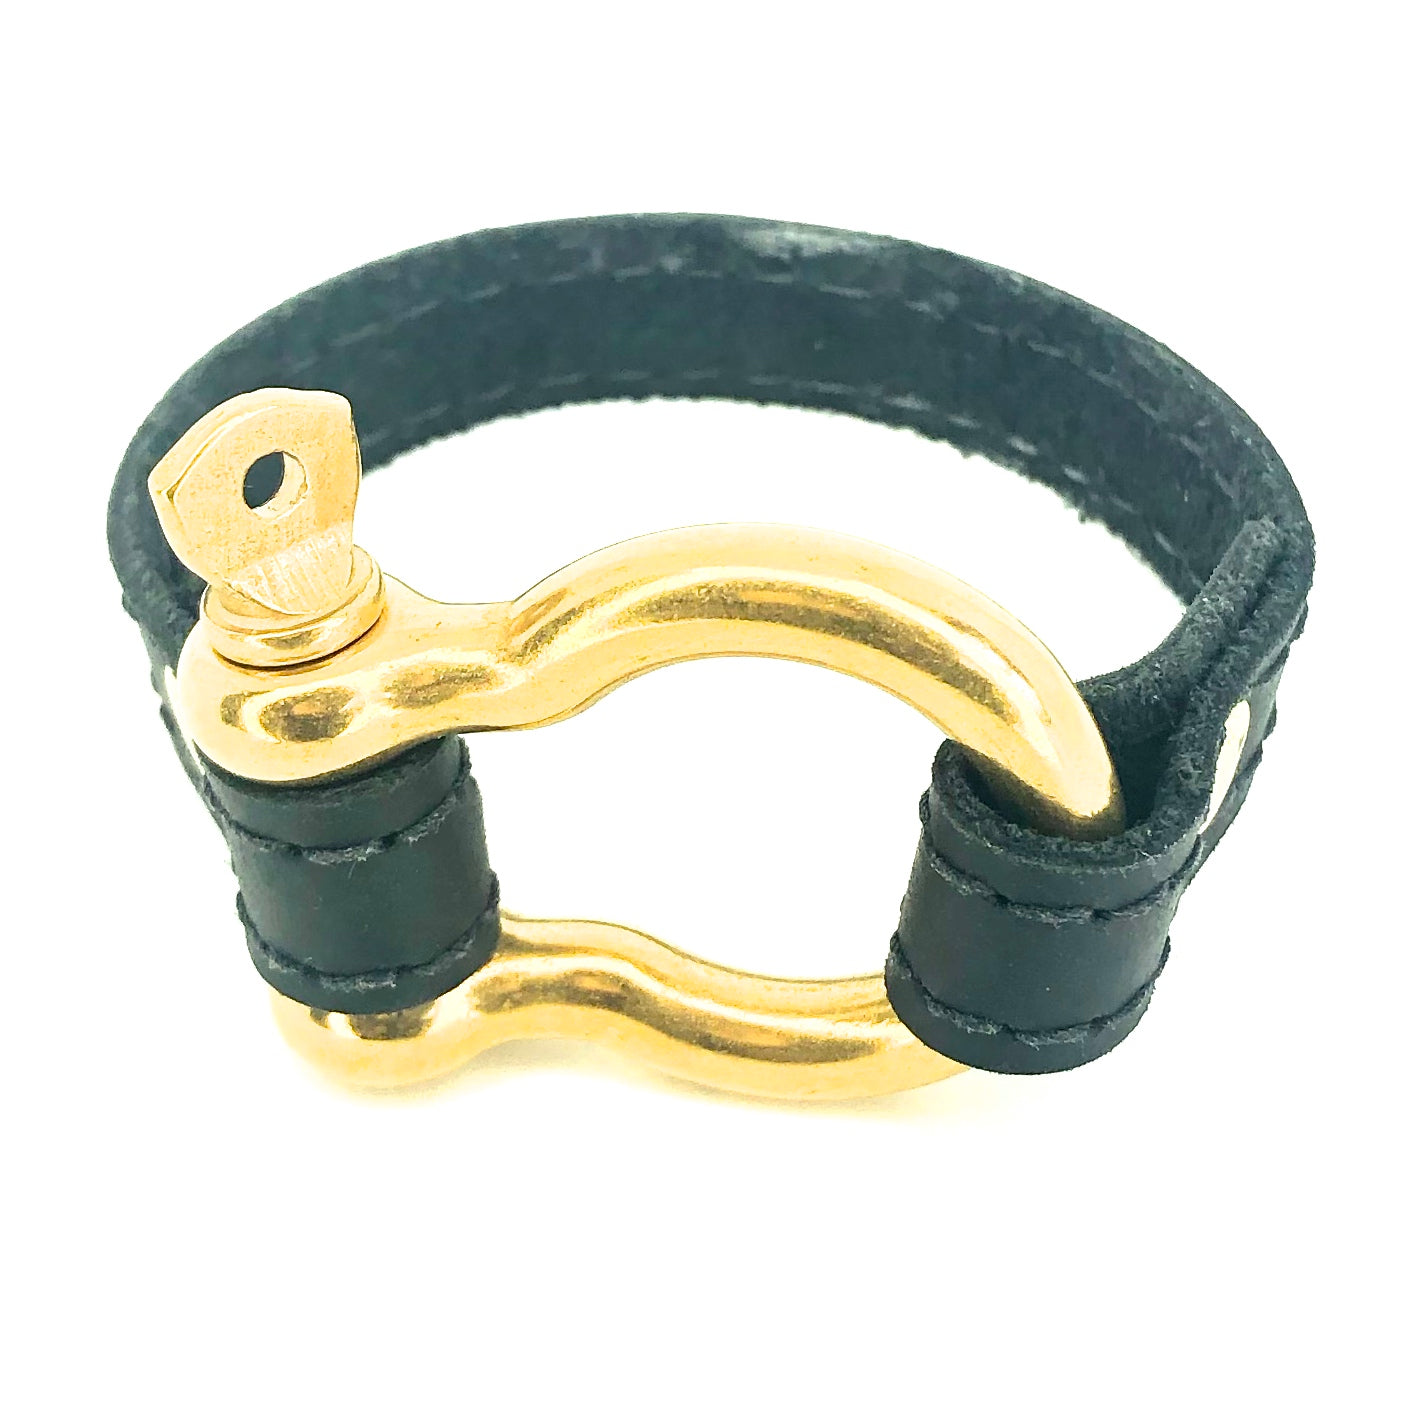 Nyet jewelry Signature Gold Bracelet Black by nyet jewelry.